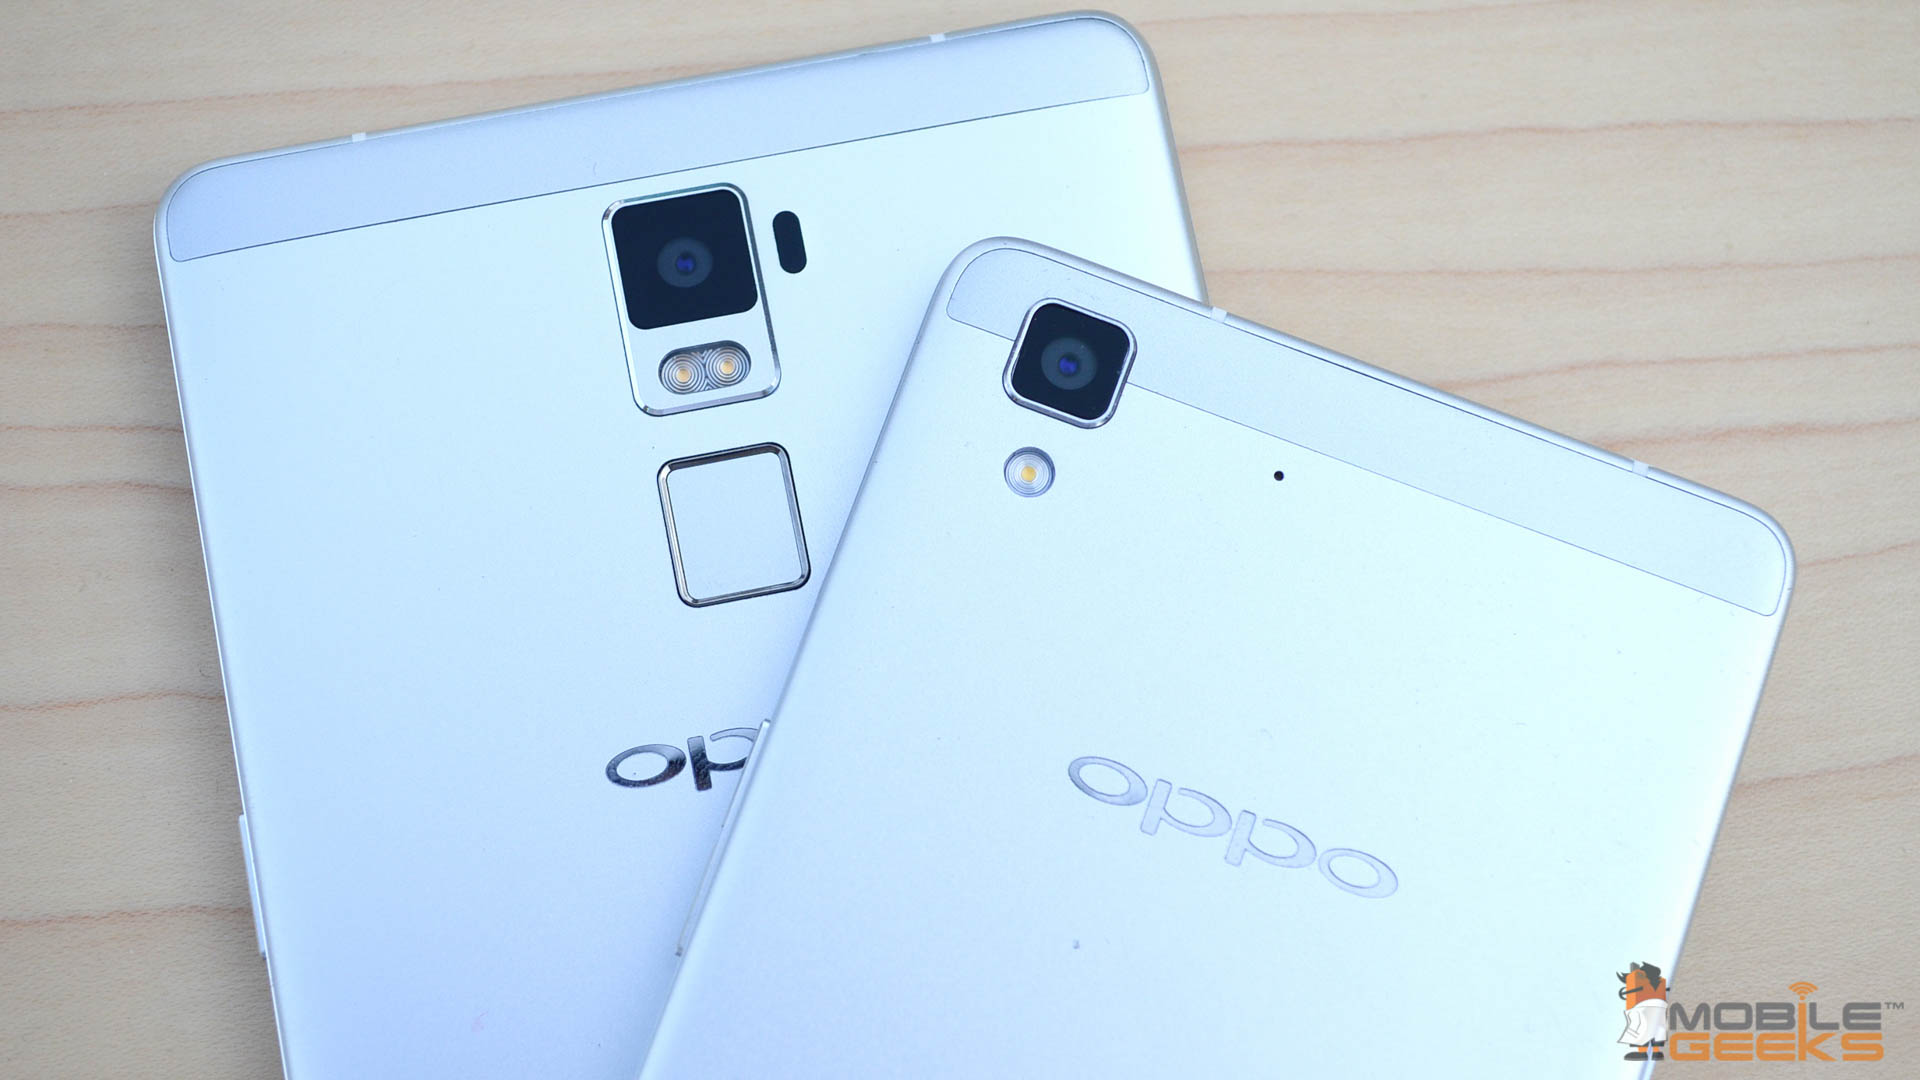 Explosion Proof Fan >> Oppo Q7 and Oppo R7 main differences that everyone must know